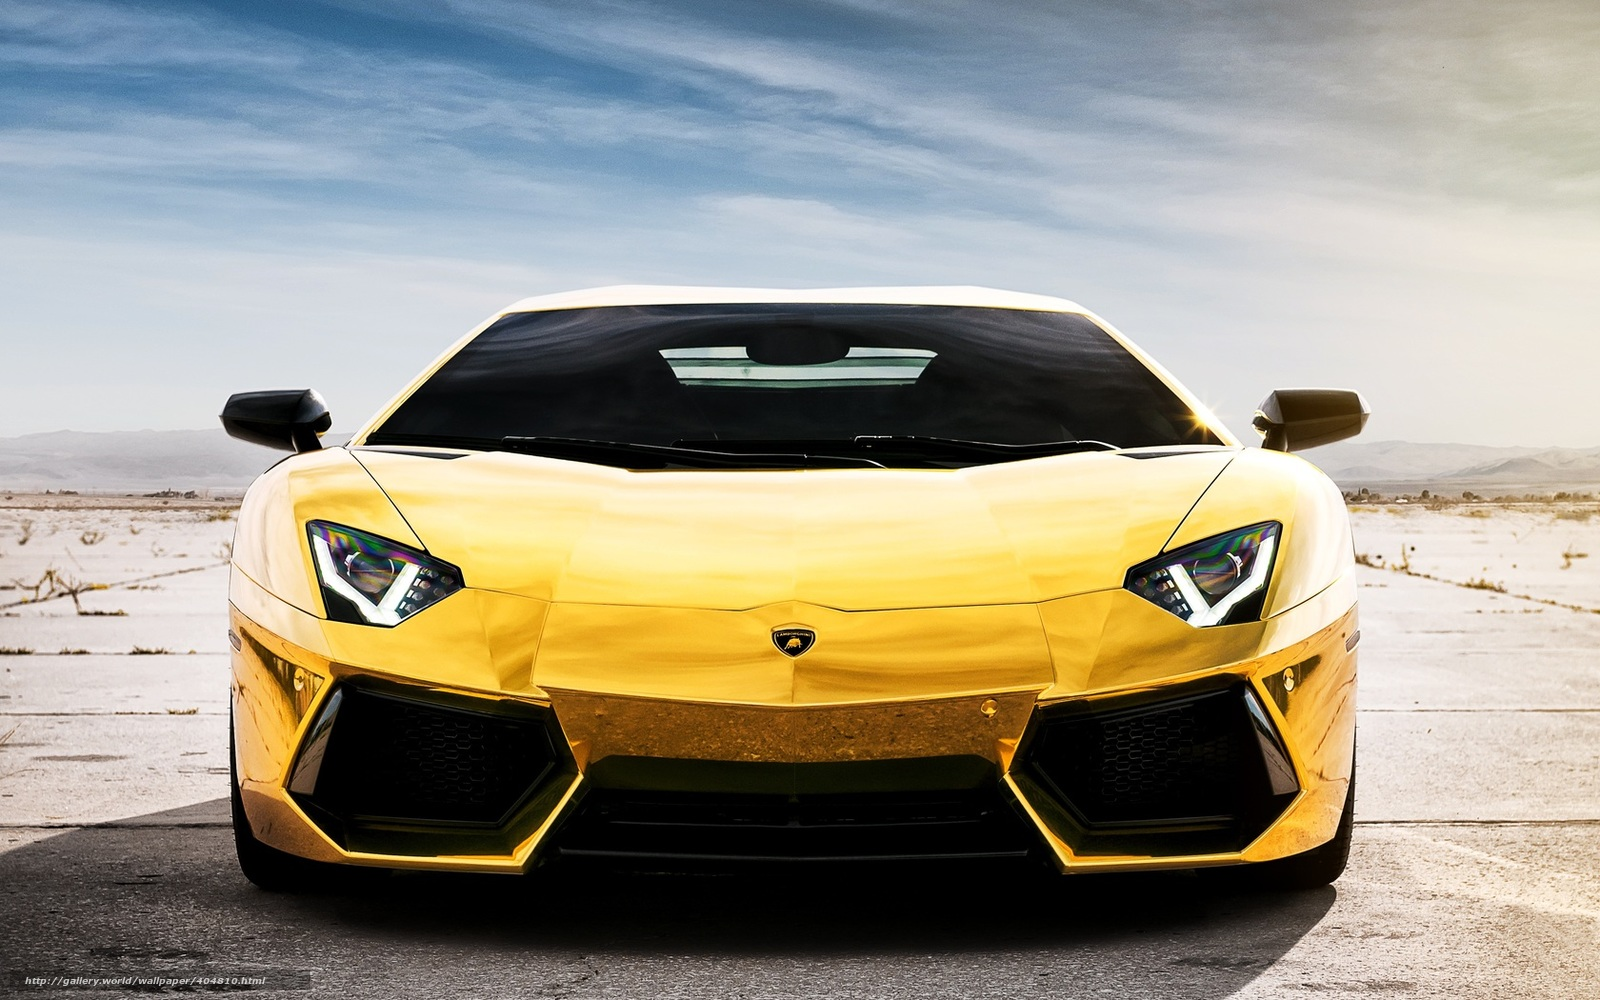 chrome gold car wallpaper - photo #12